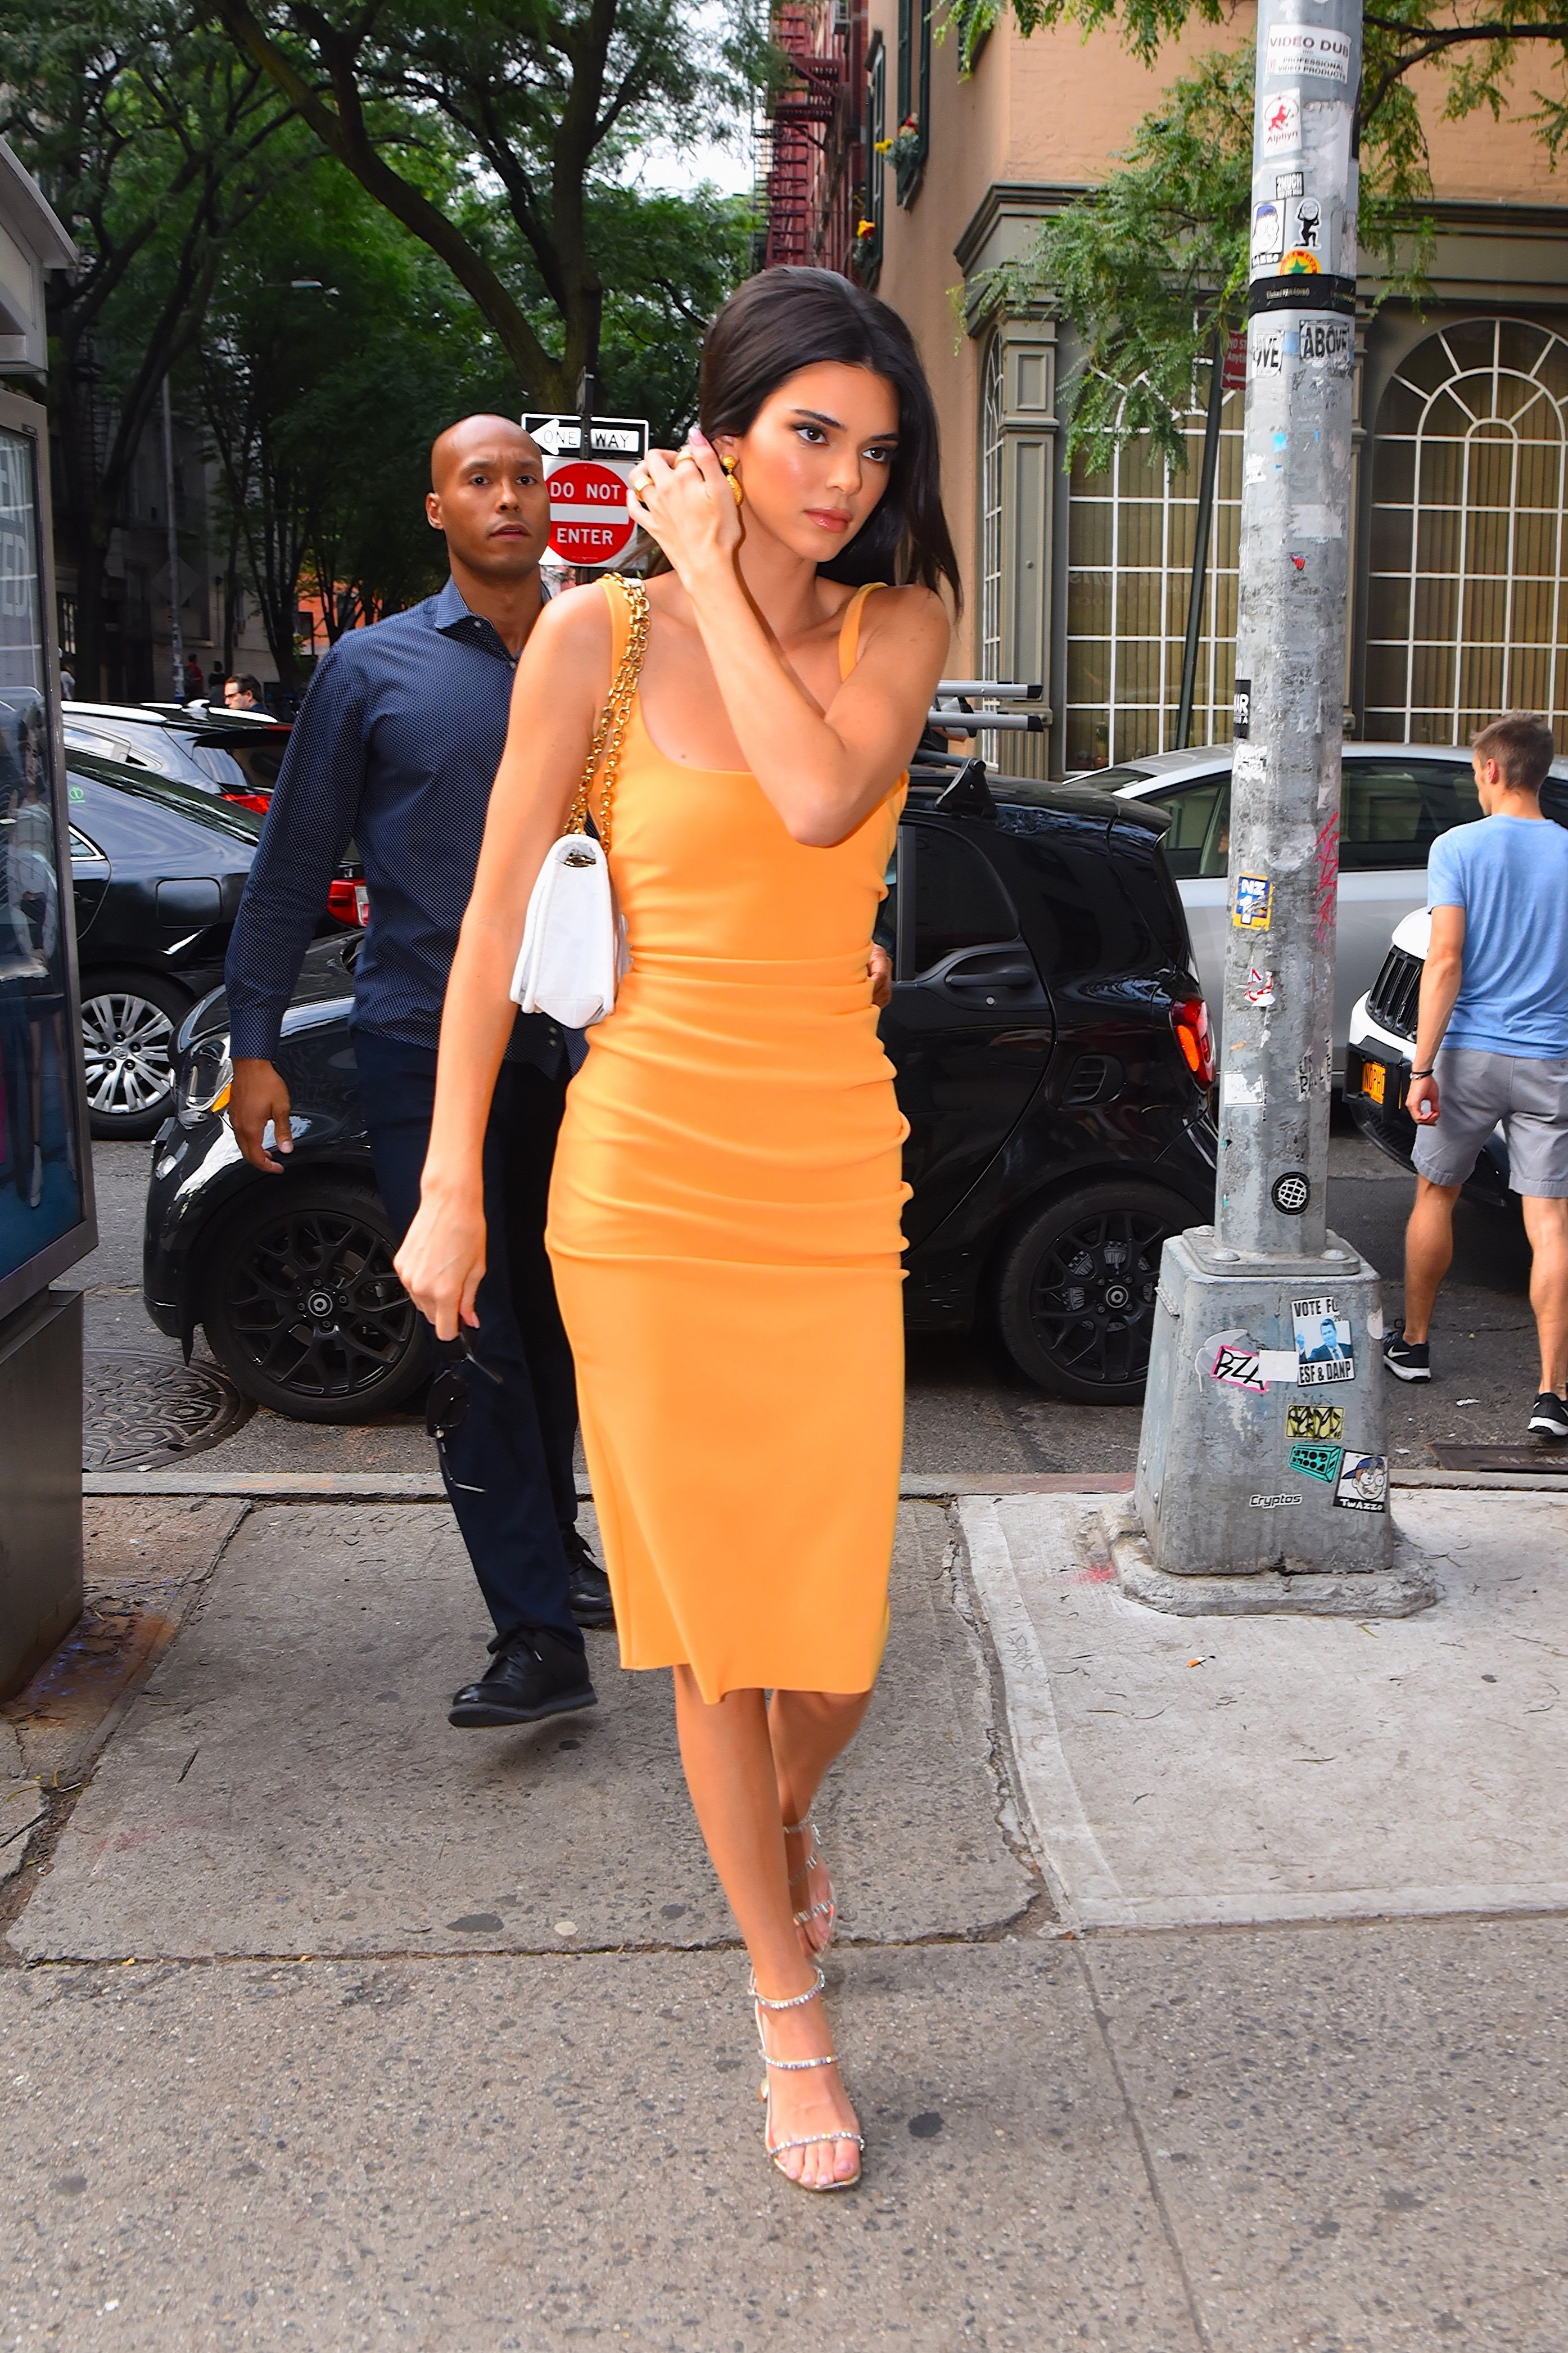 Kendall Jenner S Orange Dress Coca Cola Conspiracy Theory Explained